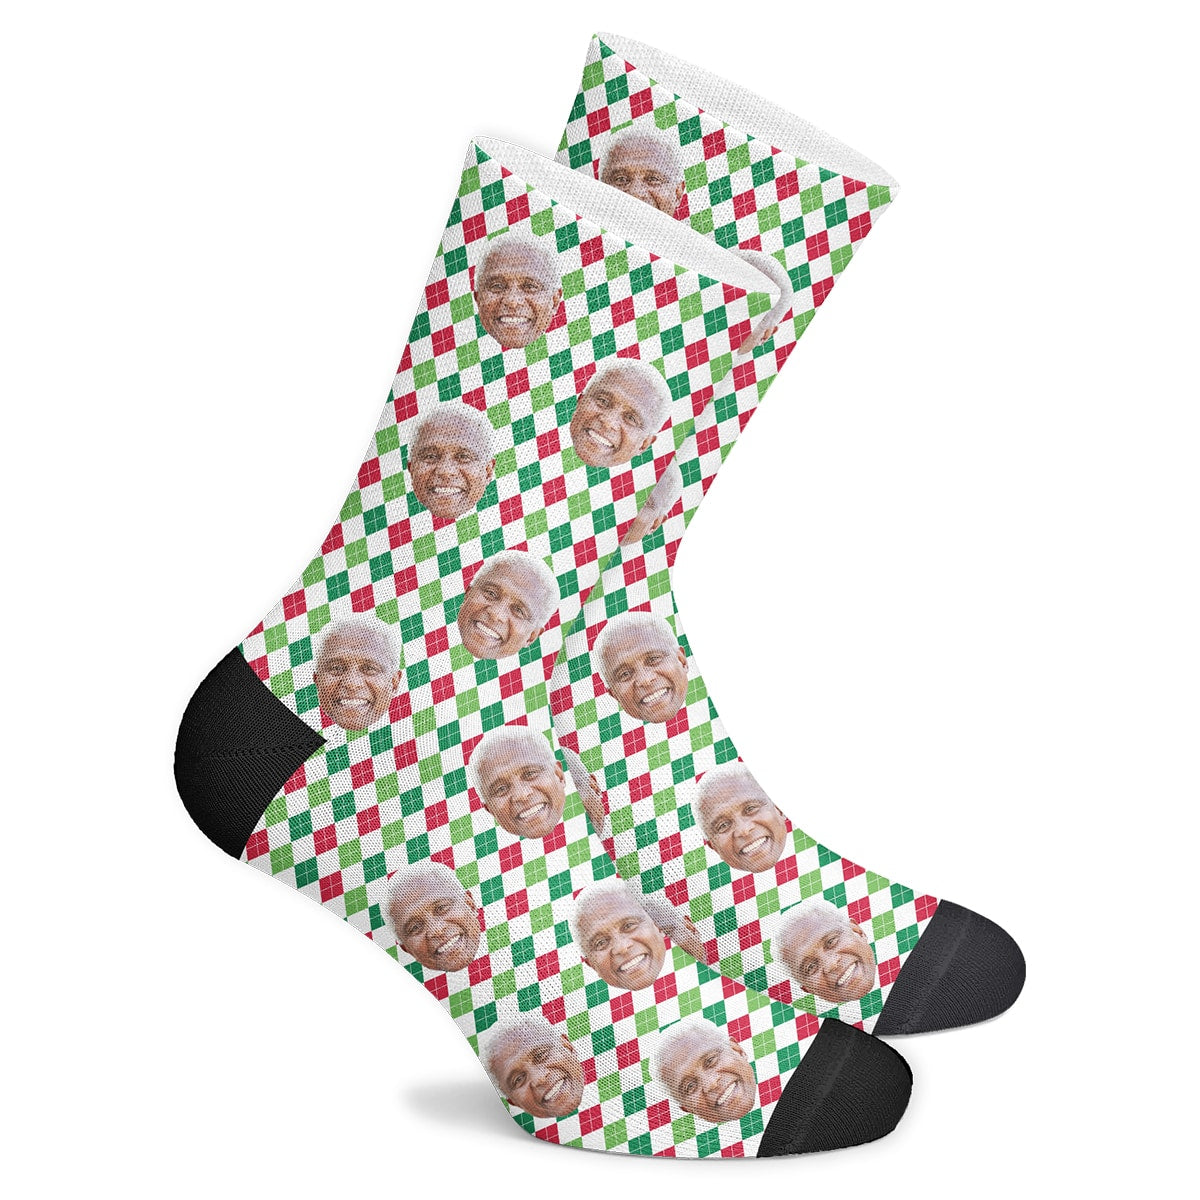 Custom Holiday Argyle Socks - Make Face Socks